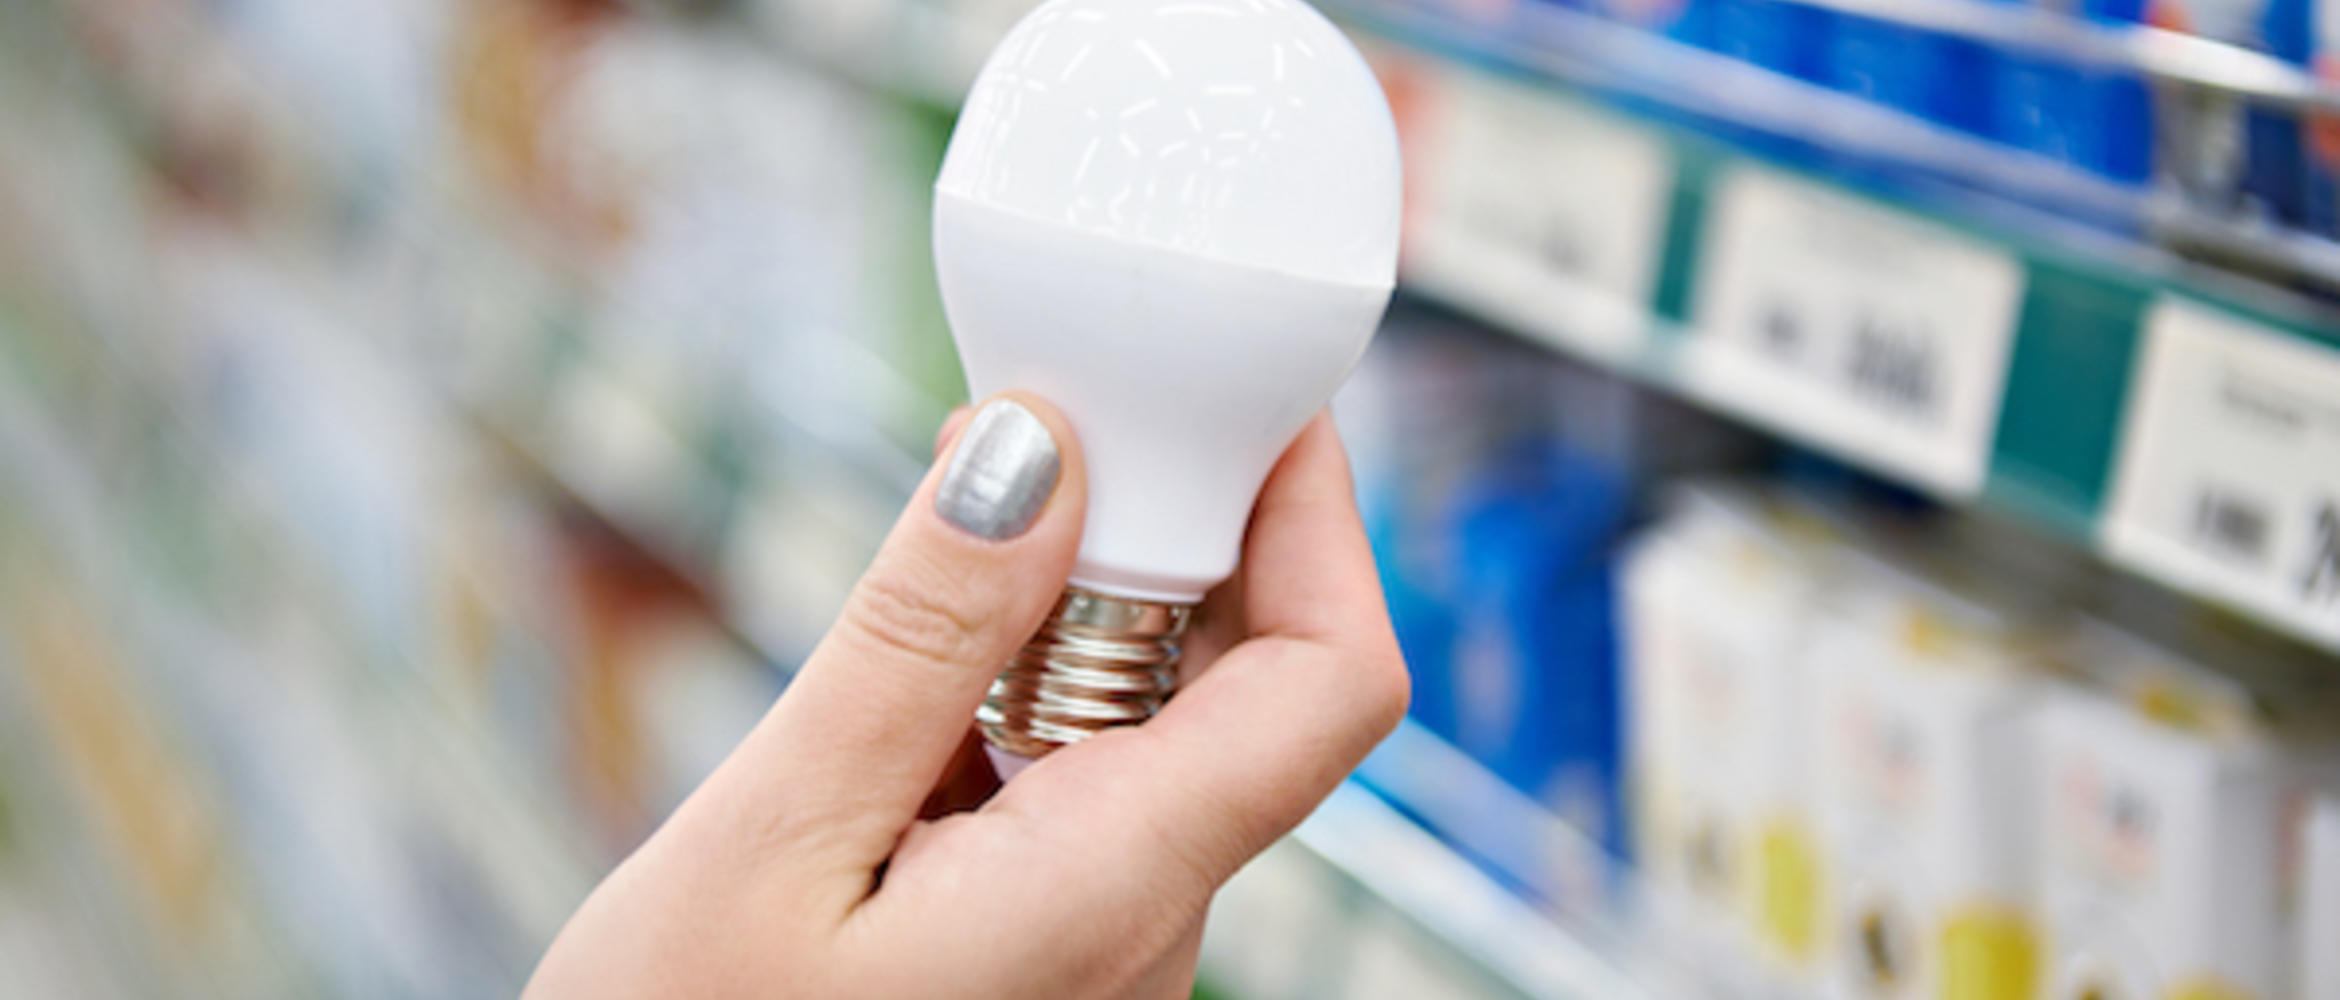 Improving the Efficiency and Lowering the Cost of LED Lighting